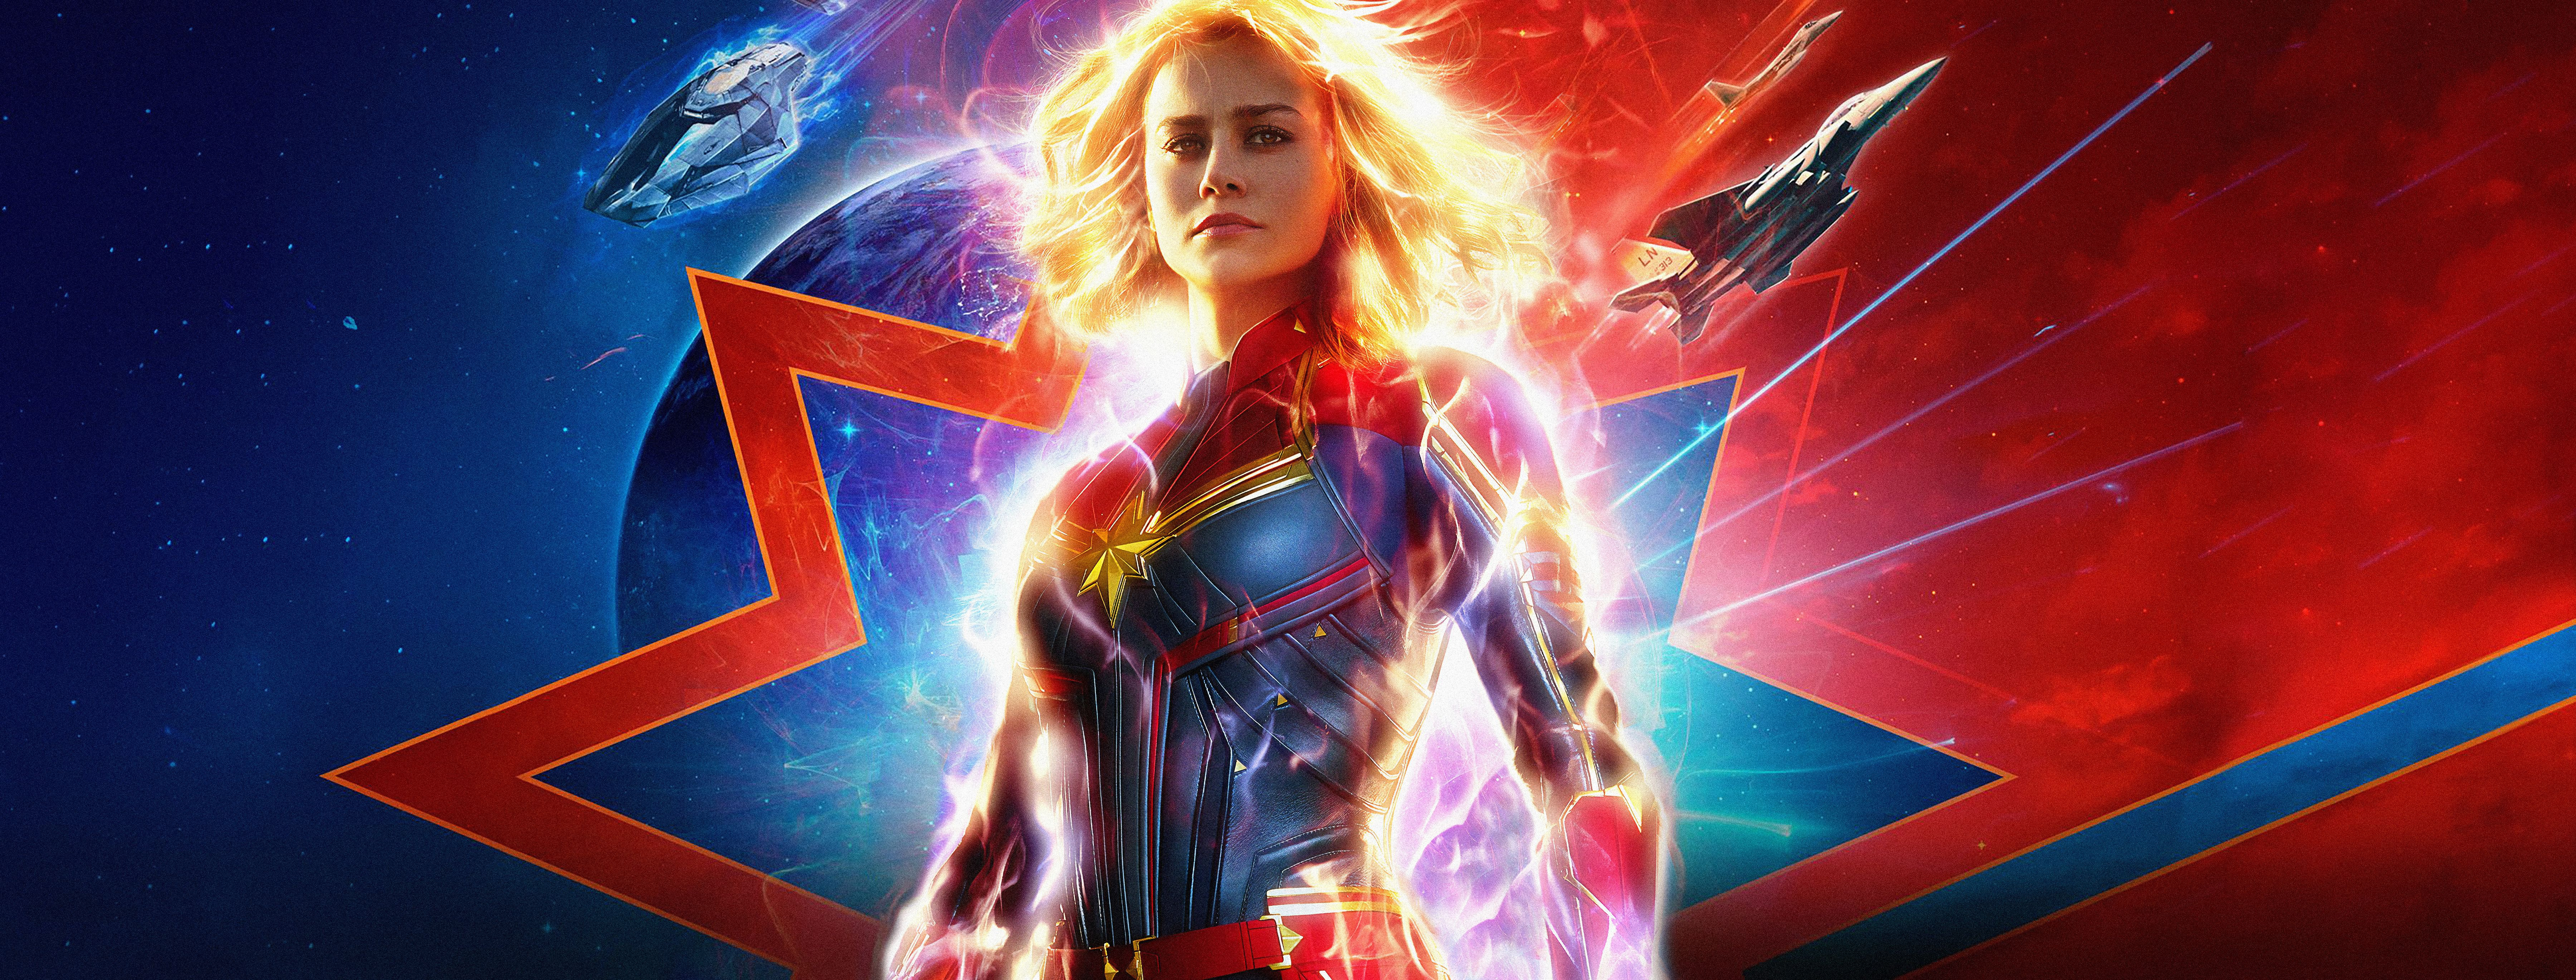 7200x2738 Captain Marvel 4k Ultra HD Wallpaper | Background Image ...